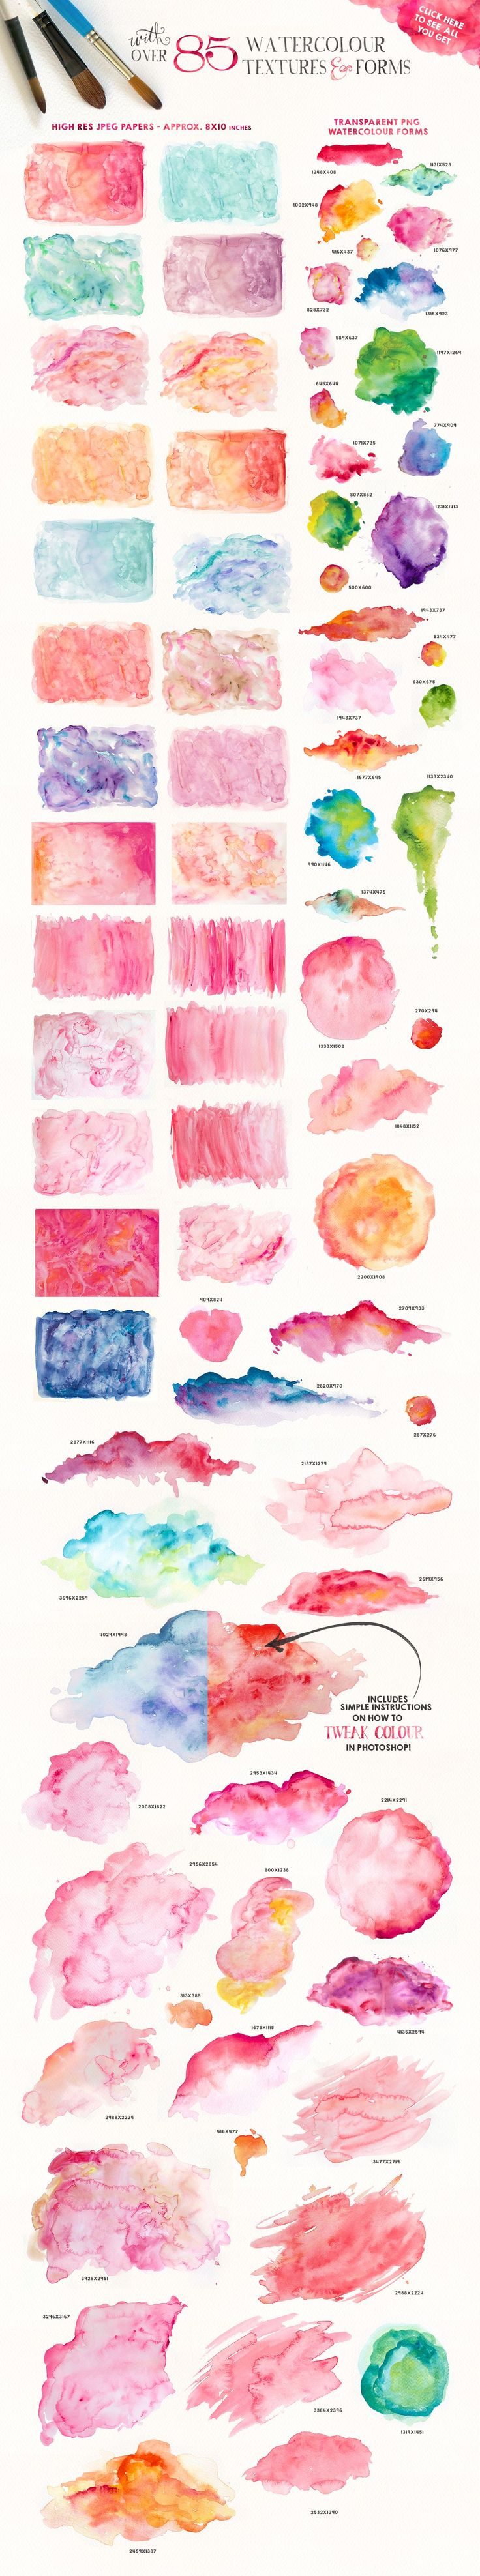 We don't all have the time or energy to whip up watercolour splotches and splashes when its just what our project needs…so here in a handy pack of over 80 items, you should find what you #watercolor jd